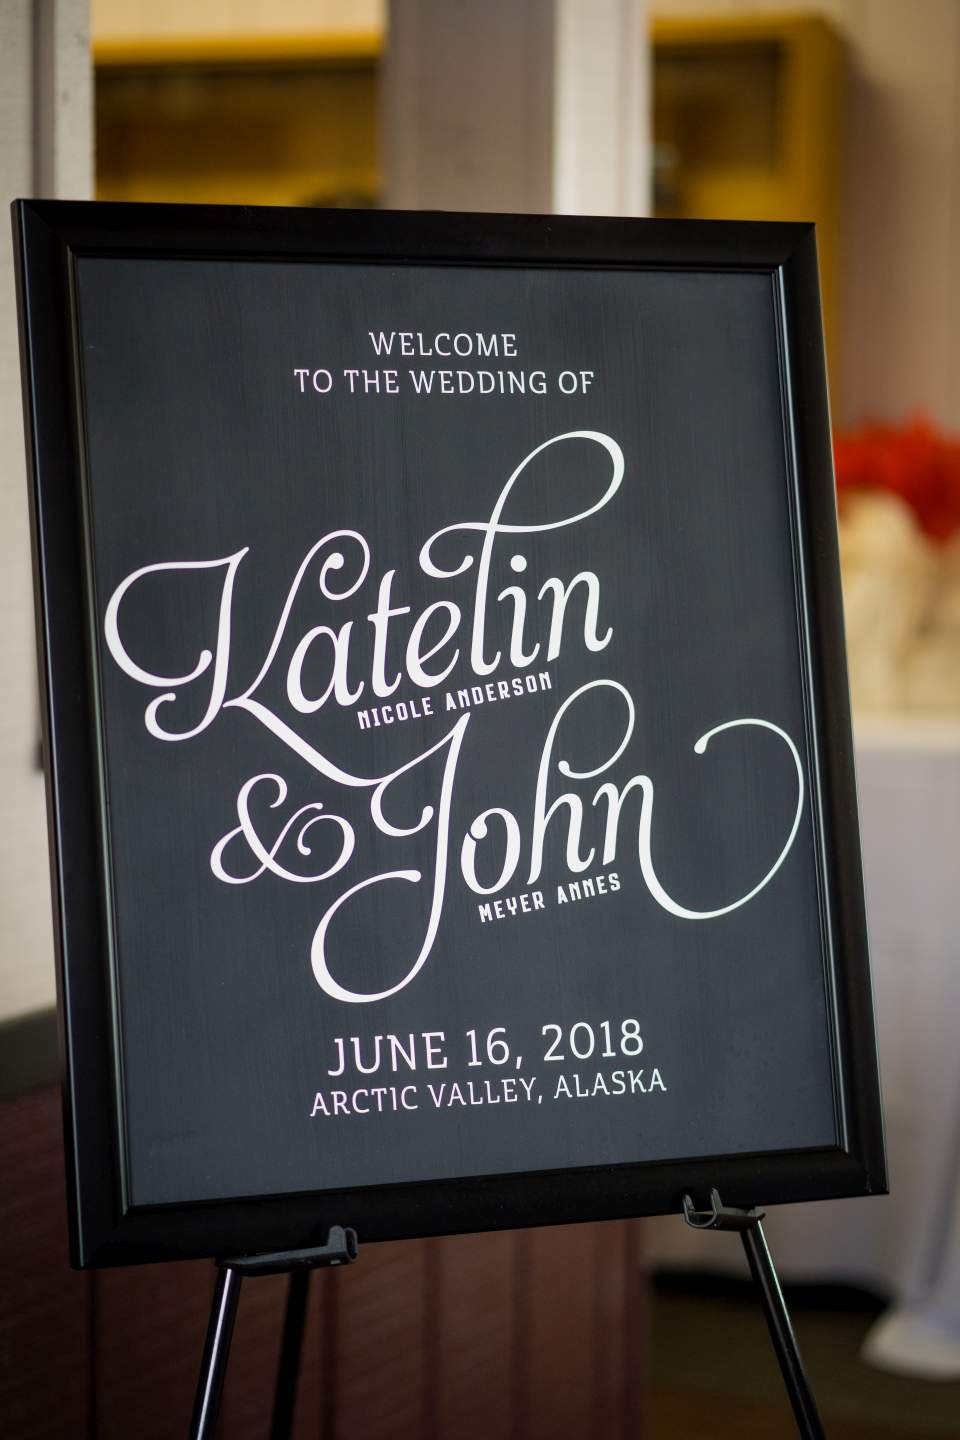 wedding reception at arctic valley